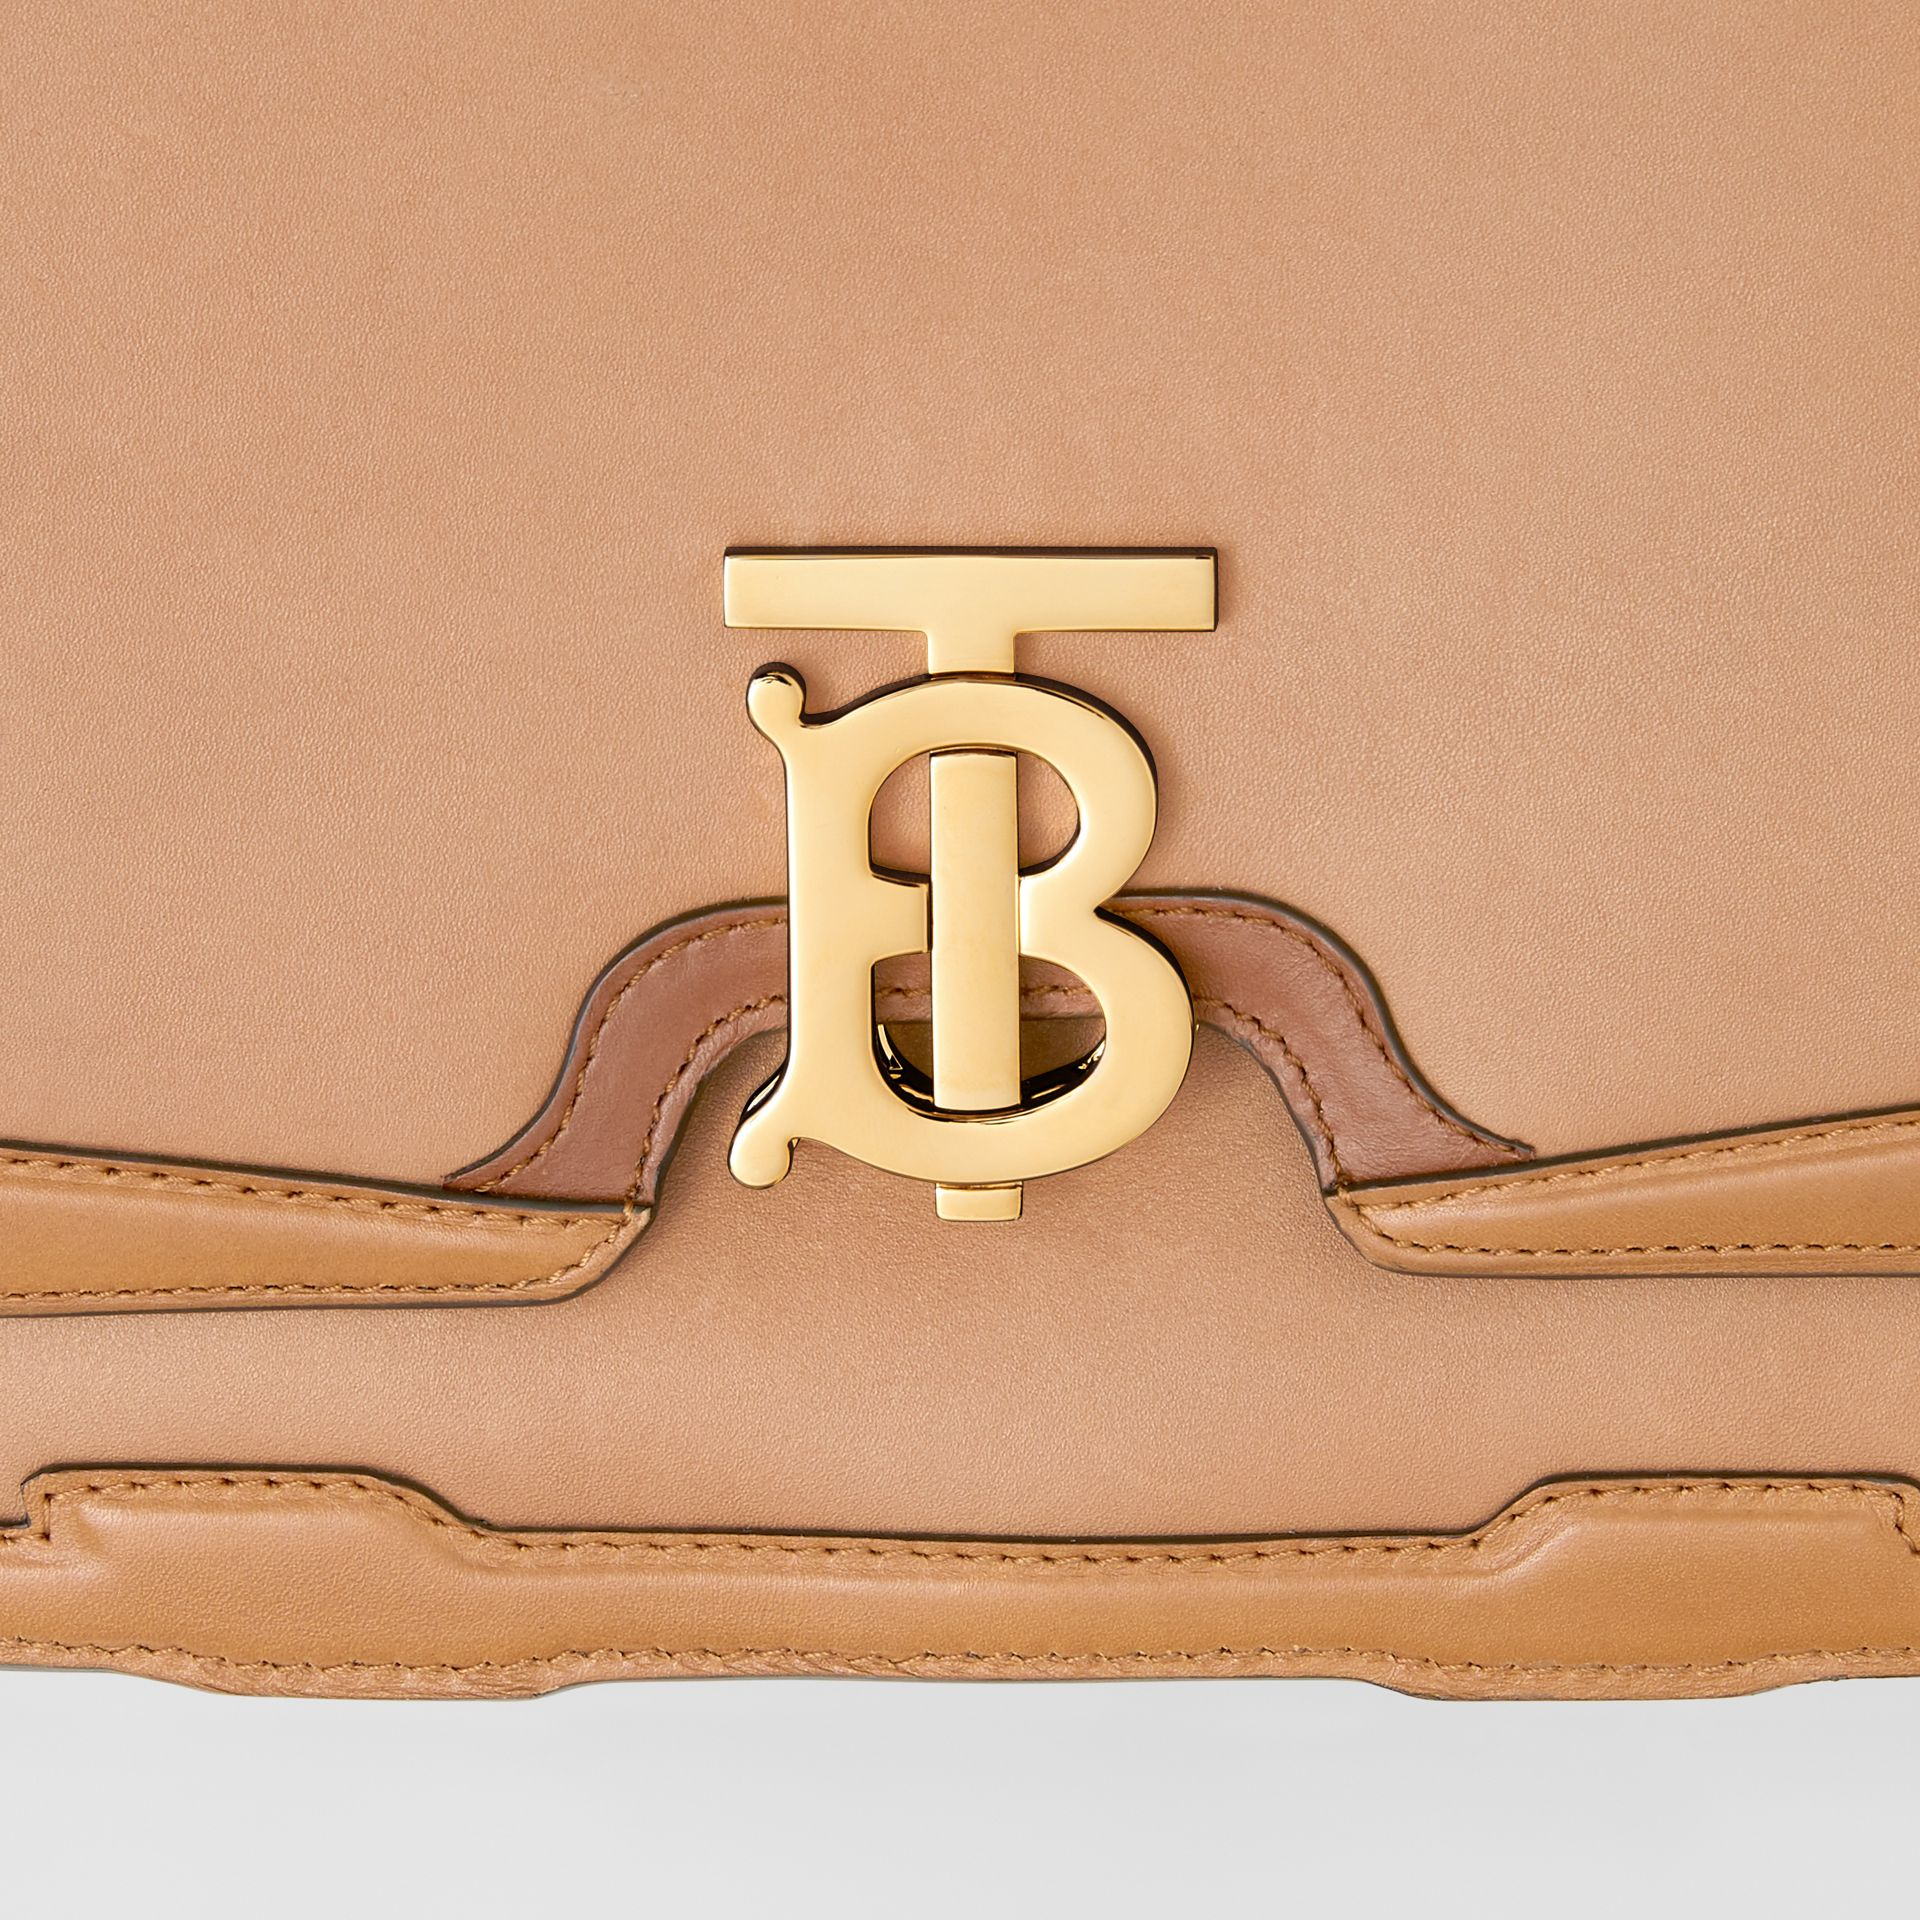 Medium Appliqué Leather TB Bag in Warm Camel - Women | Burberry - gallery image 5